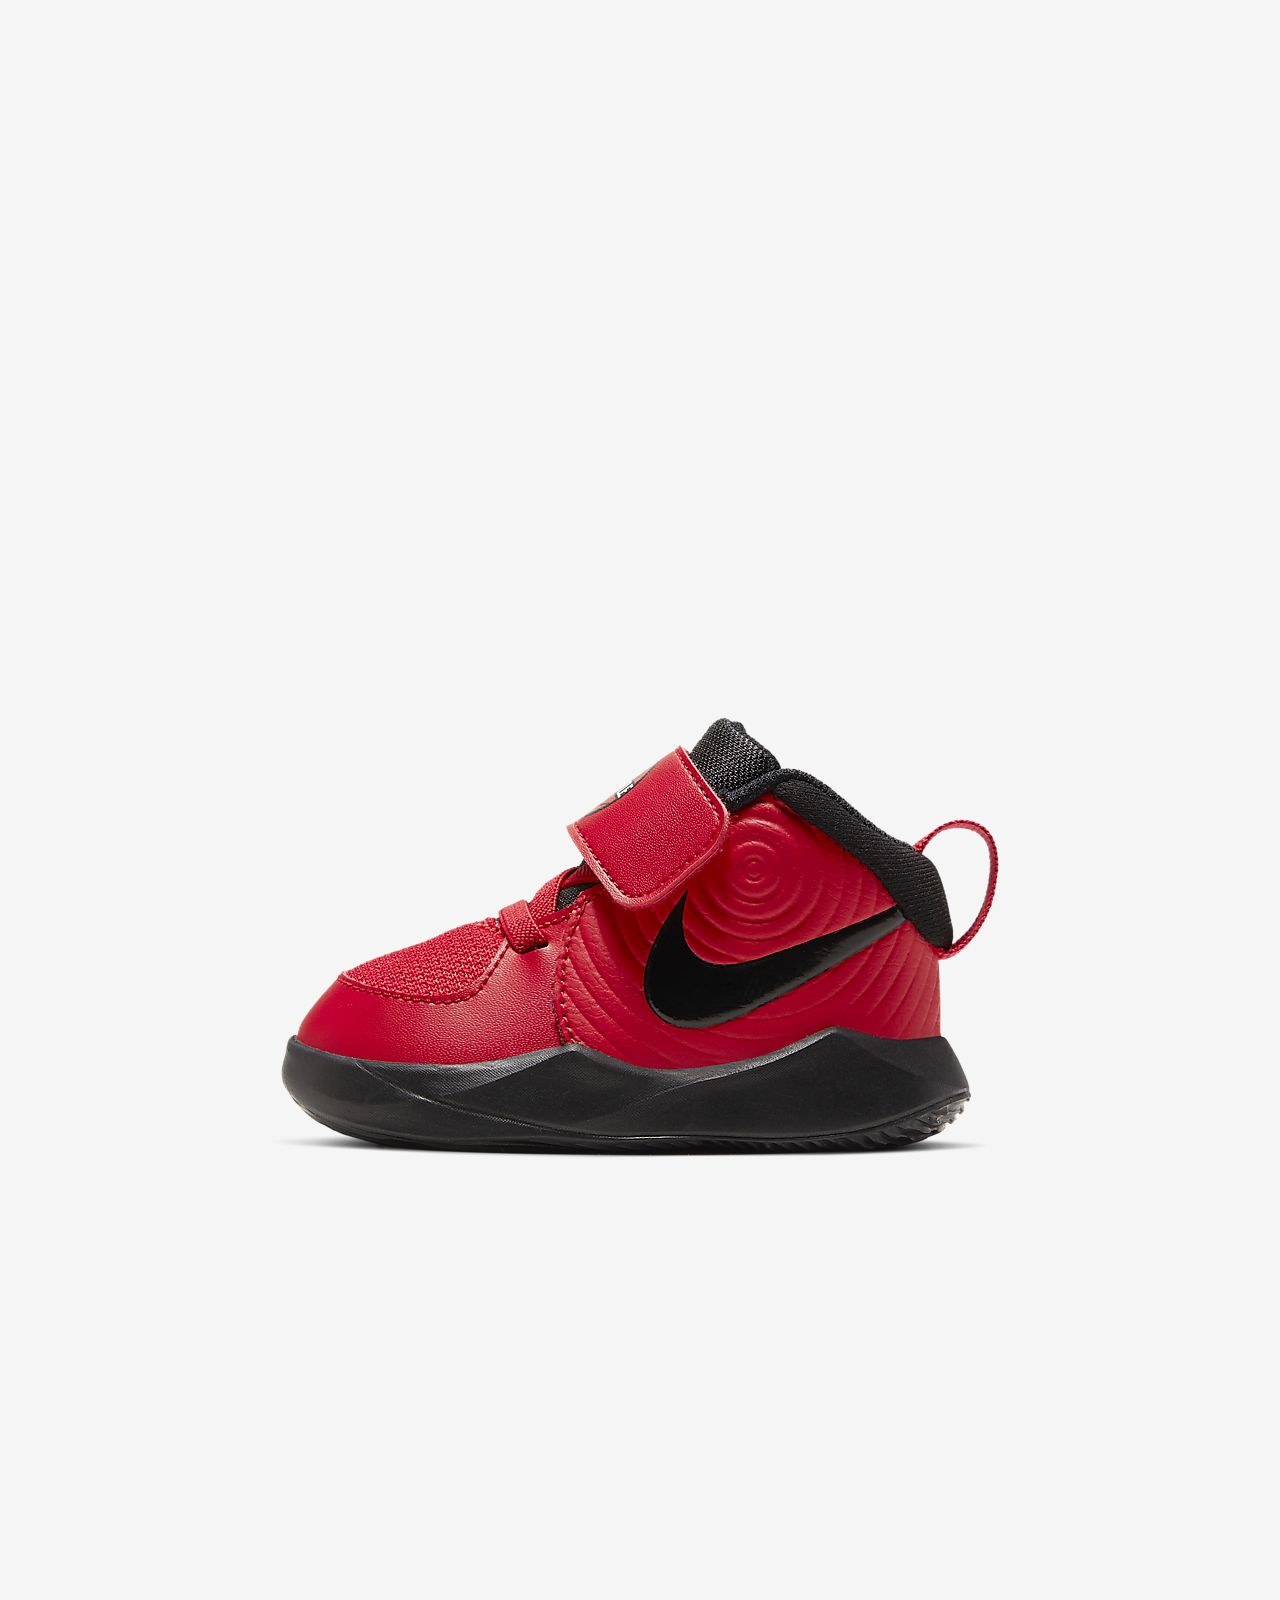 Nike Team Hustle D 9 Baby/Toddler Shoe